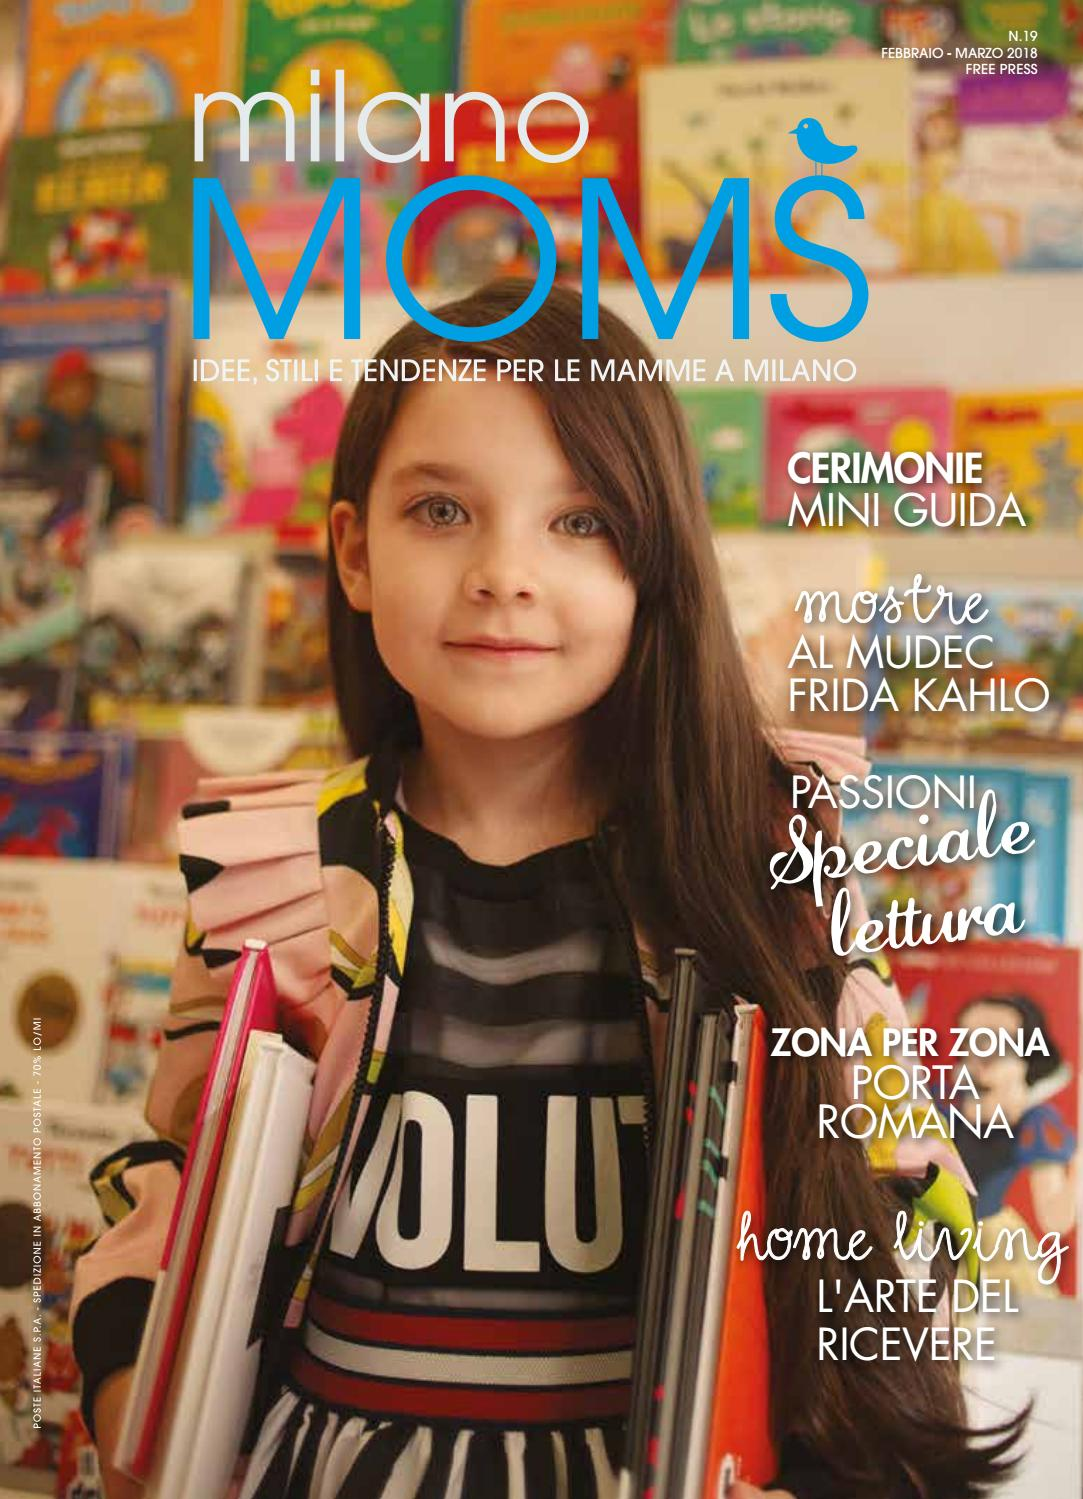 749a577913d1 Milano MOMS n.19 - 2018 by milanoMOMS - issuu